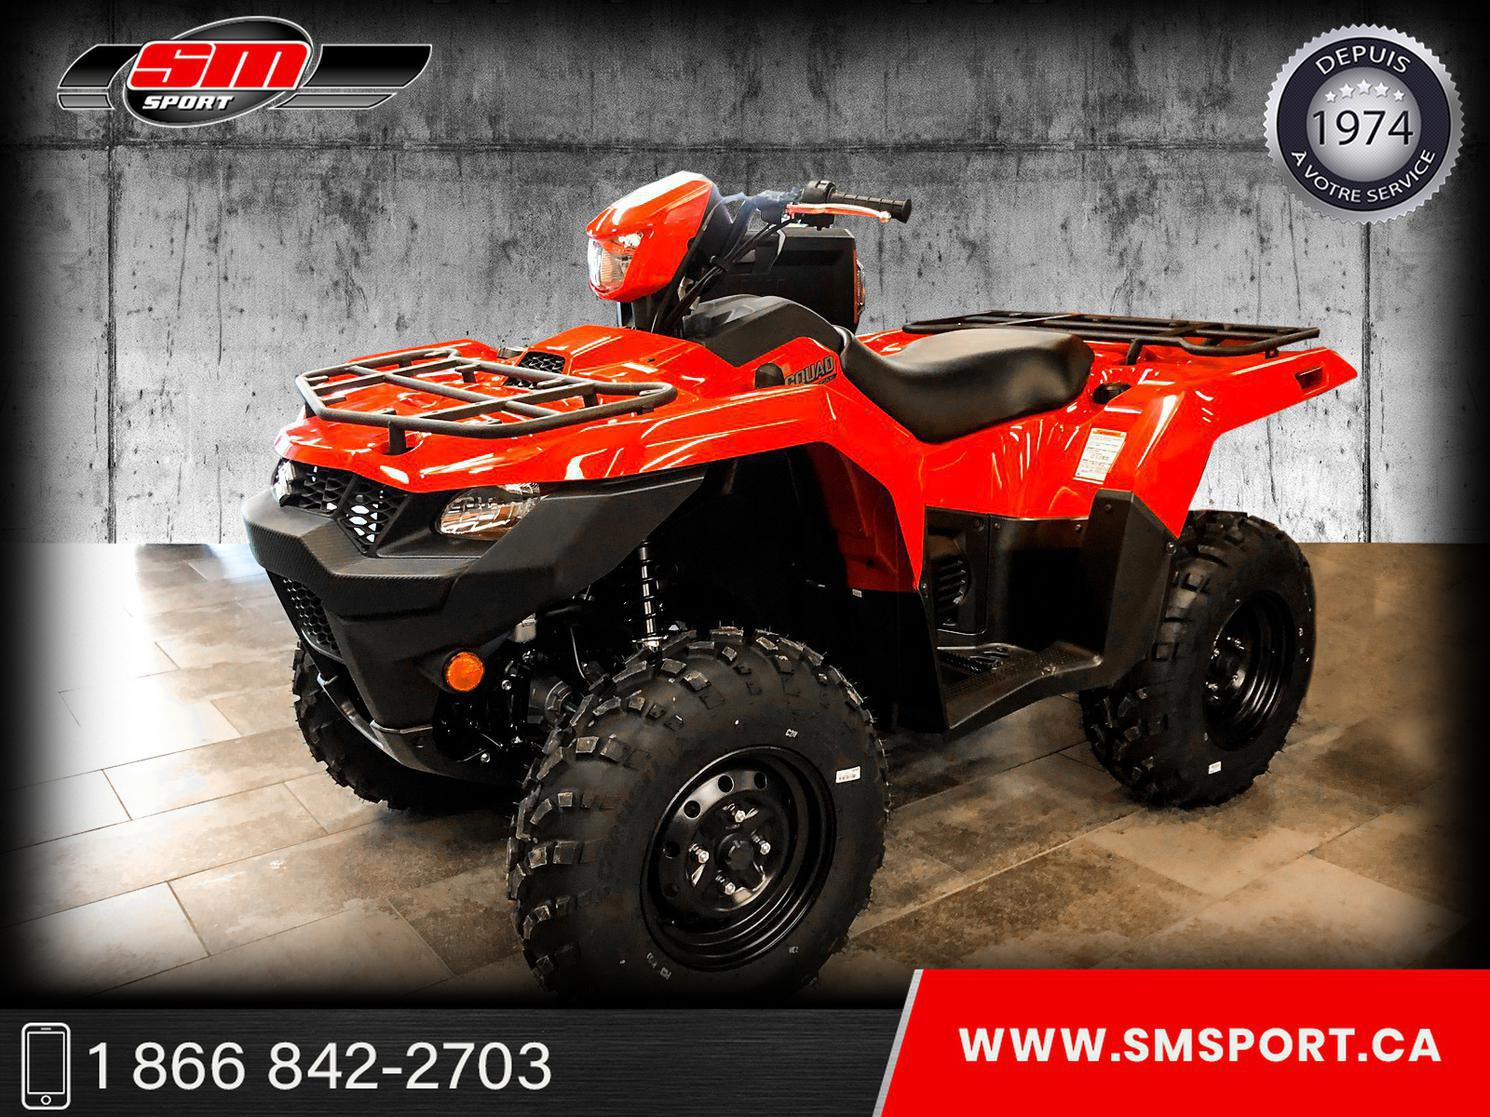 2021 Suzuki LTA 500 KINGQUAD XP- NEUF DISPONIBLE EN STOCK